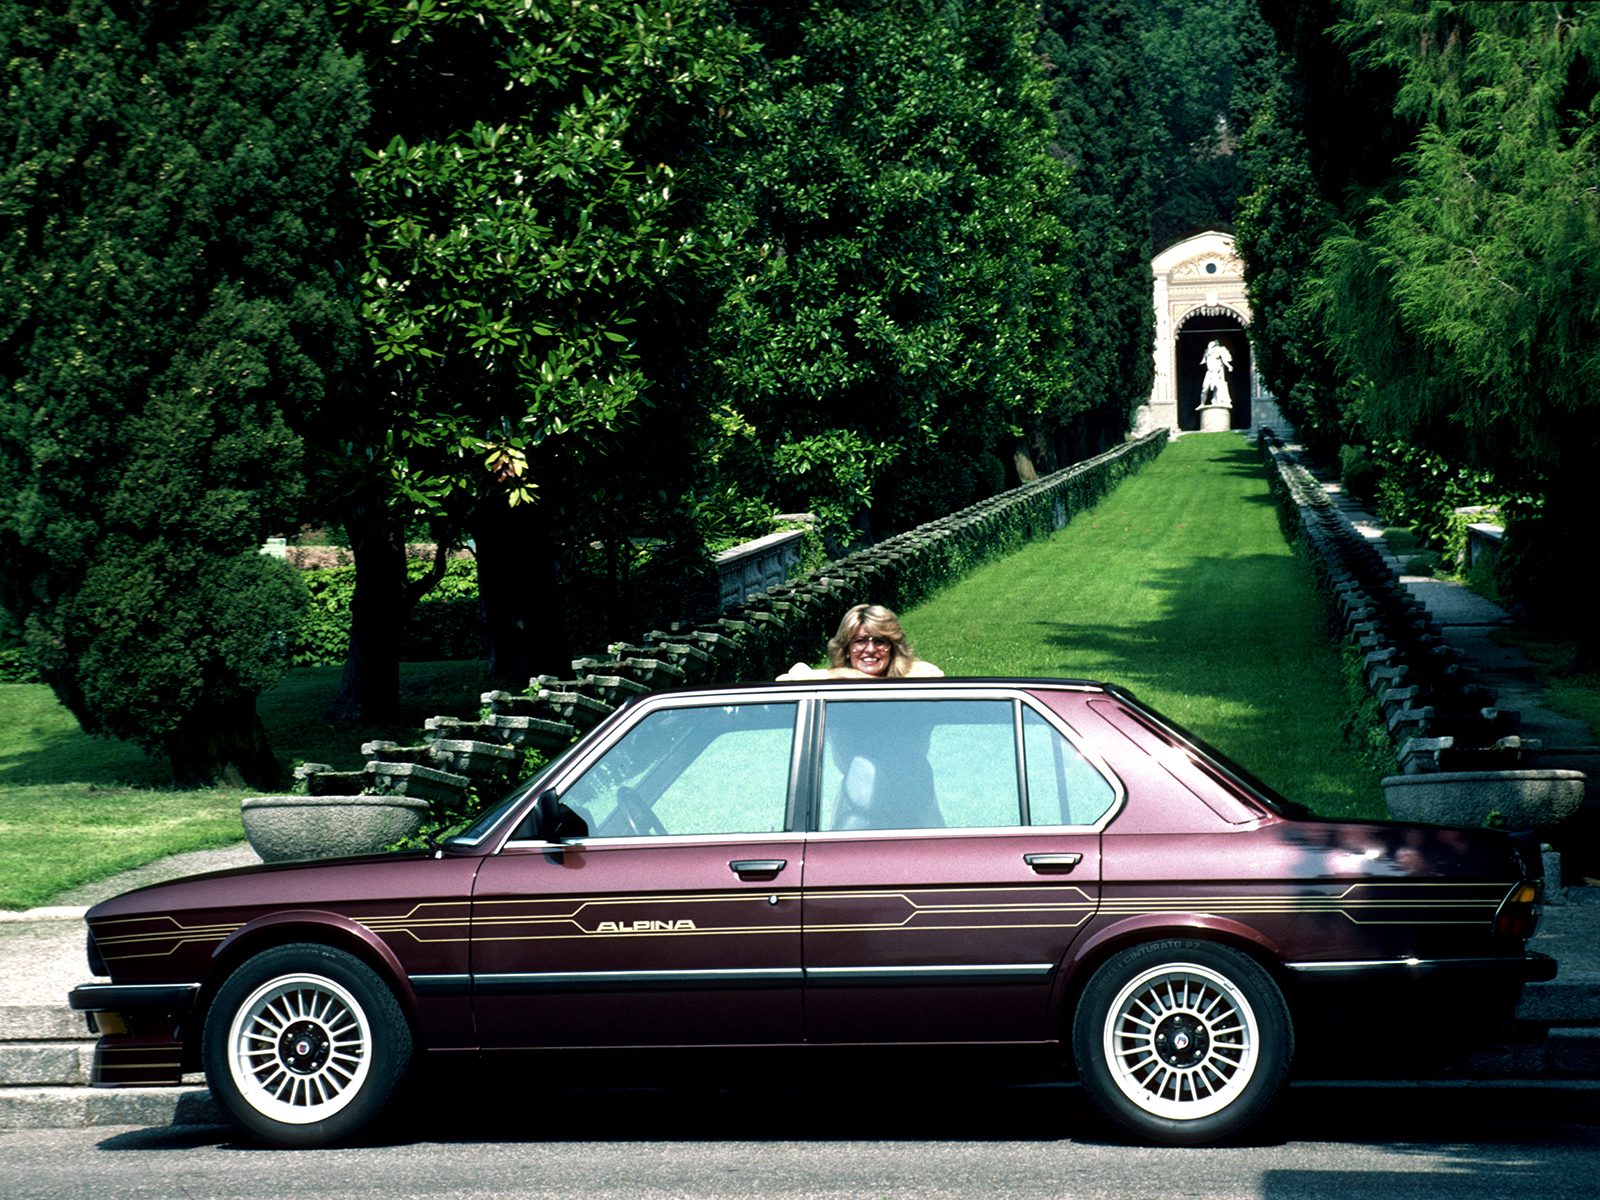 alpina historie E28 B7 Turbo 1